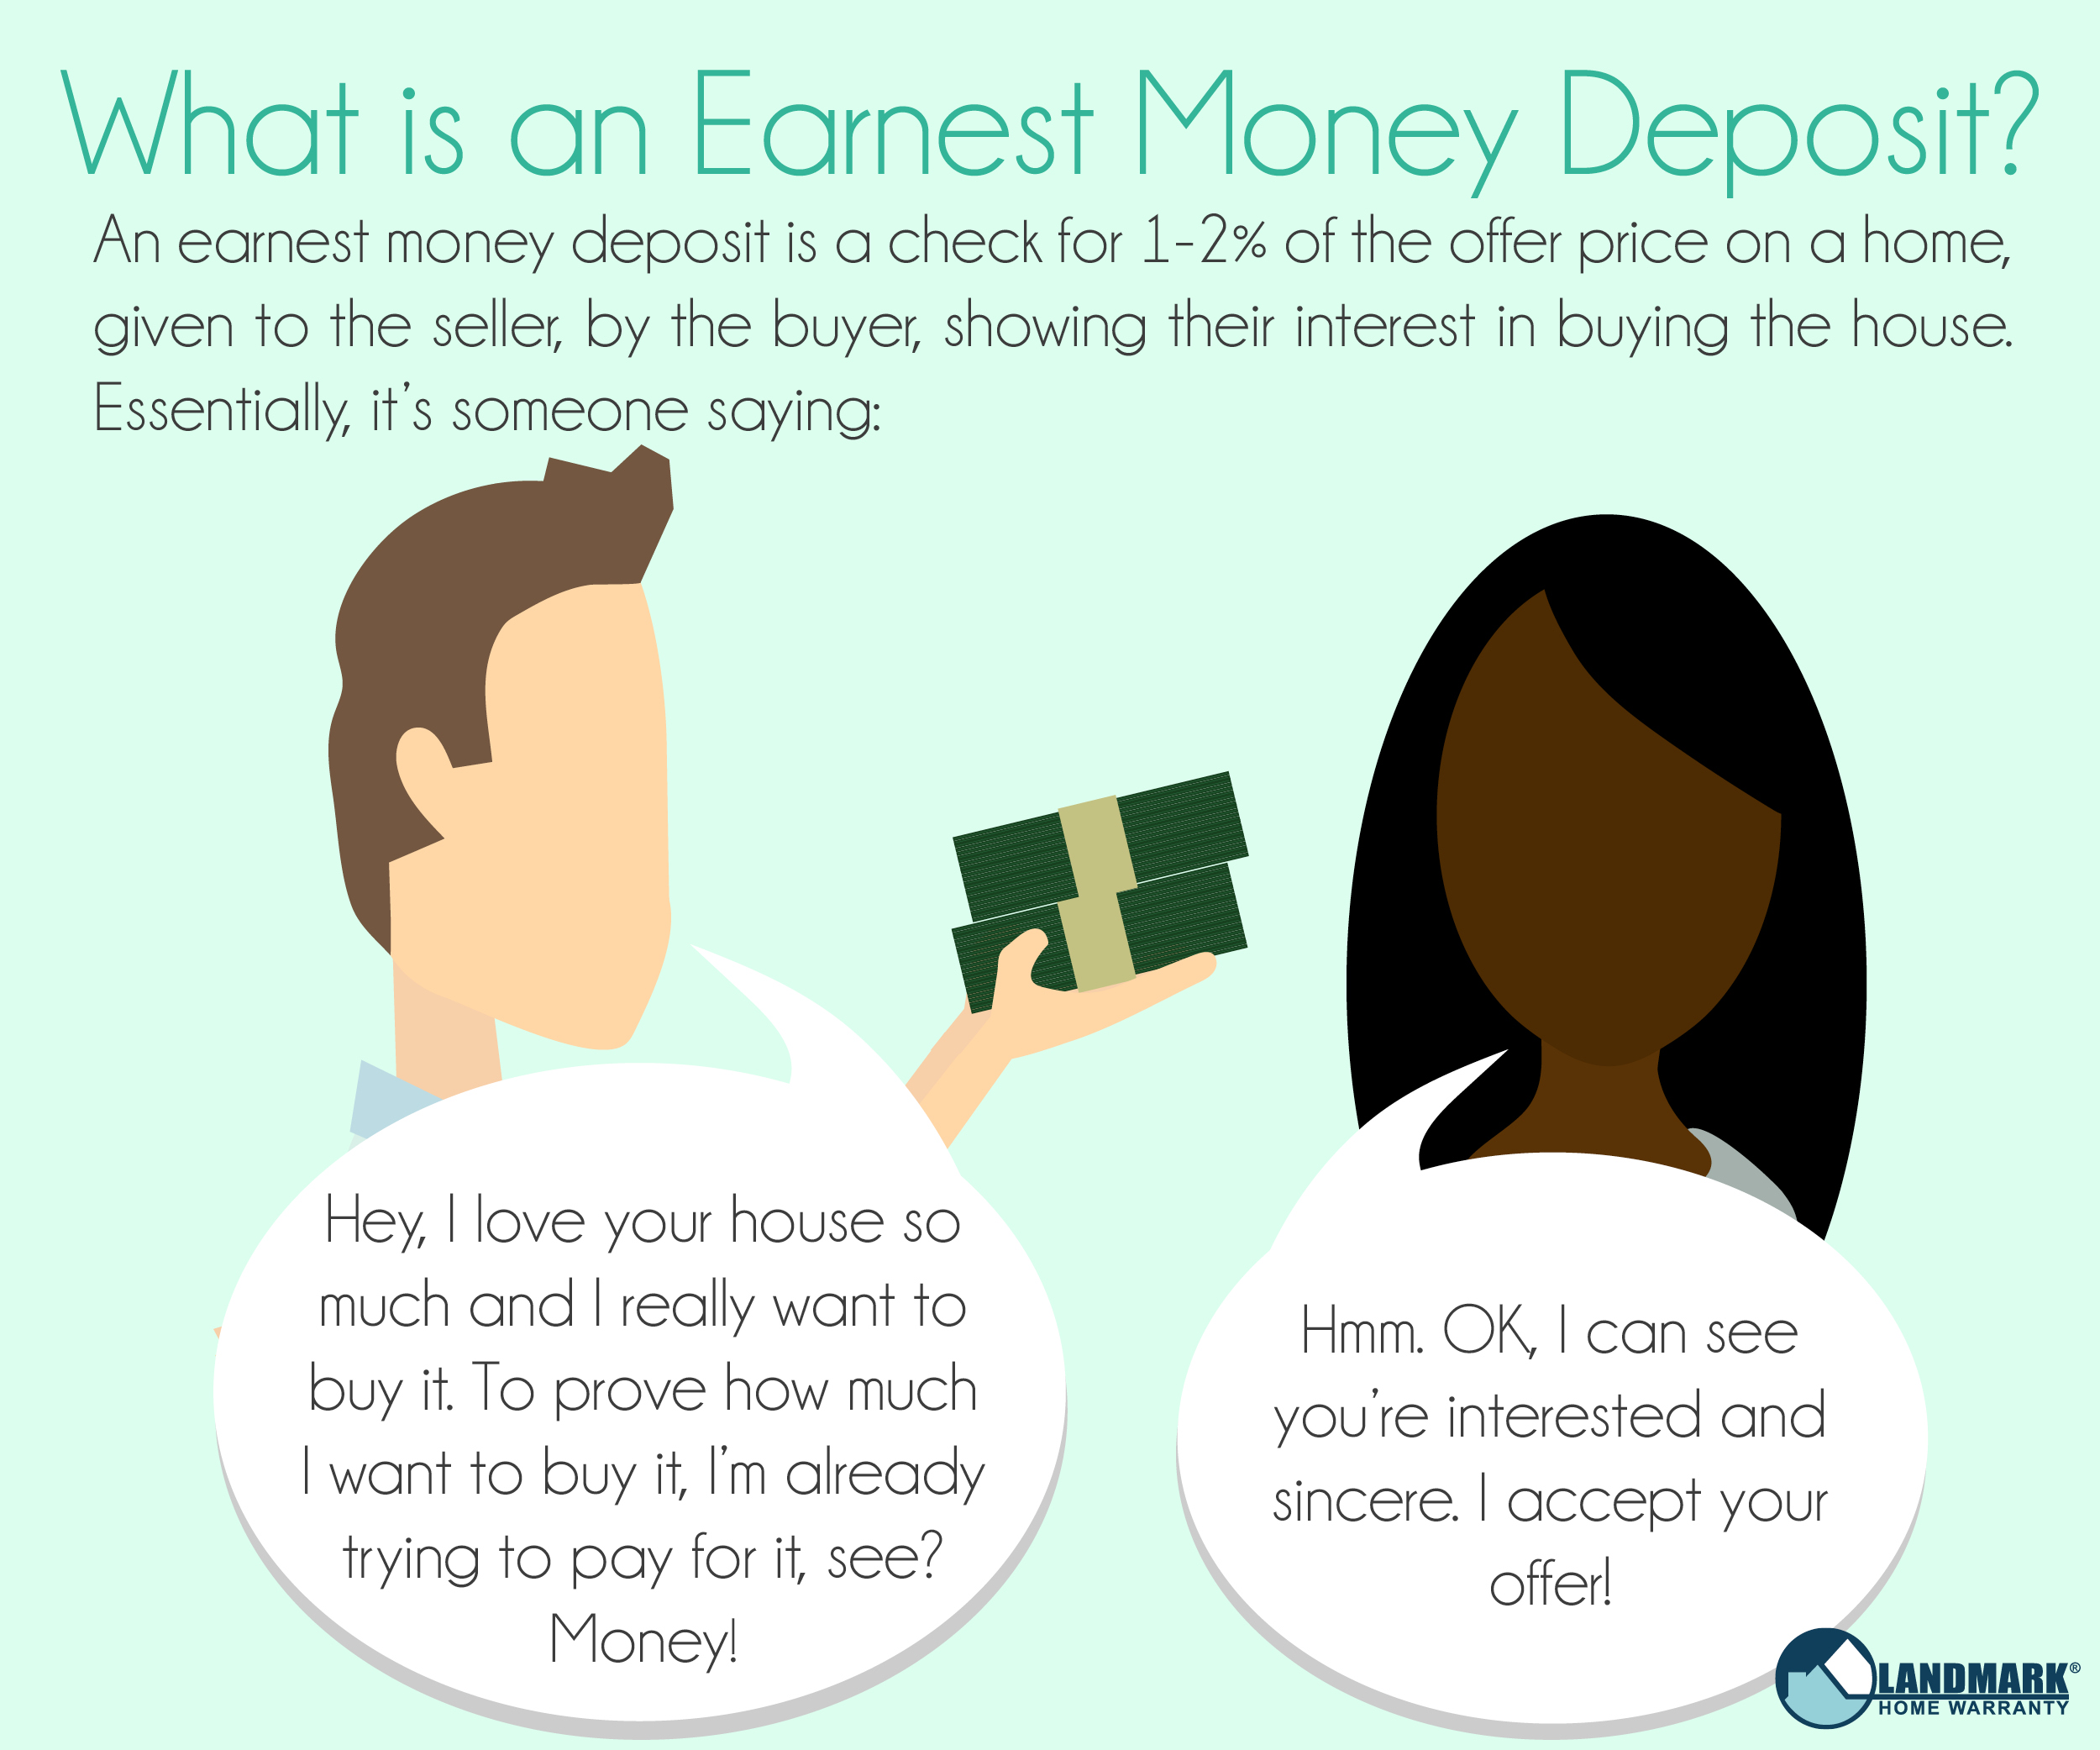 What is an Earnest Money Deposit 2